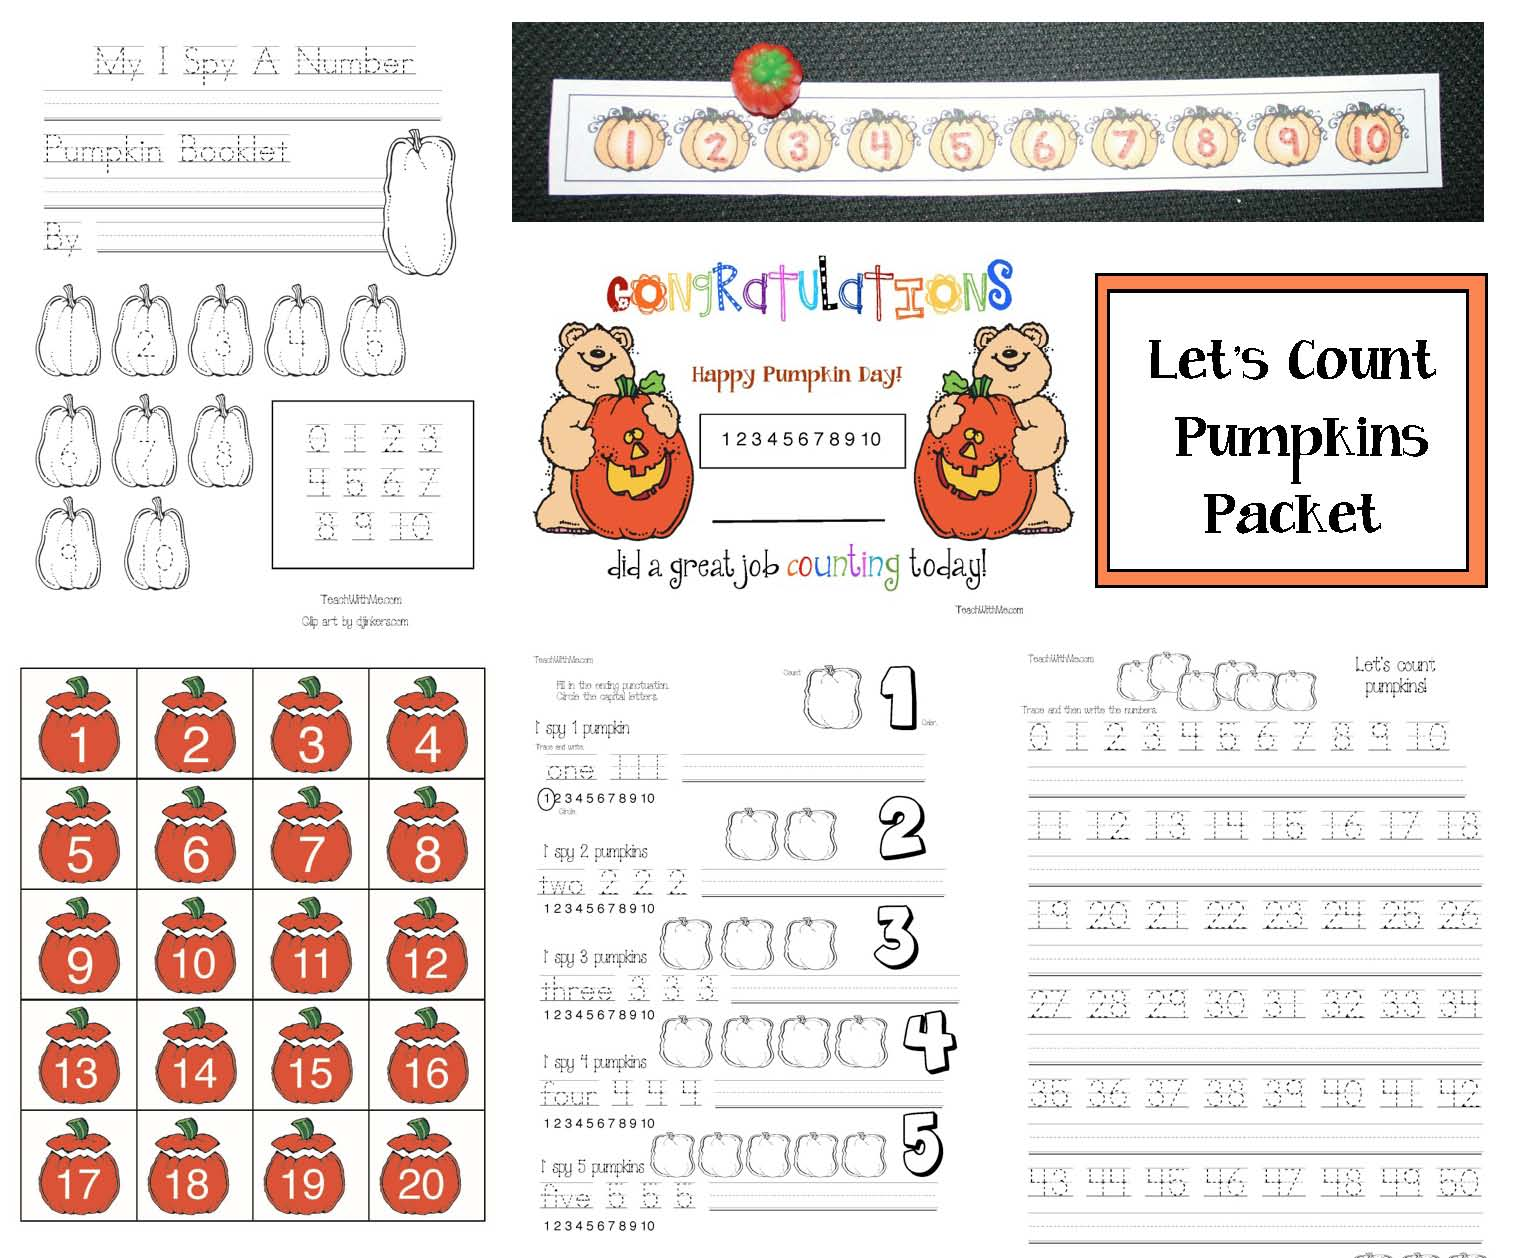 pumpkin activities, 10 frames, skip counting, pumpkin bookmark, skip counting by 2's 3's 5's and 10's, 10 frame templates, coin activities, coin booklet, counting coins, pumpkin money, 10 frame activities, pumpkin math, pumppin centers, pumpkin songs, pumpkin crafts, pumpkin activities, pumpkin puppets, pumpkin easy readers